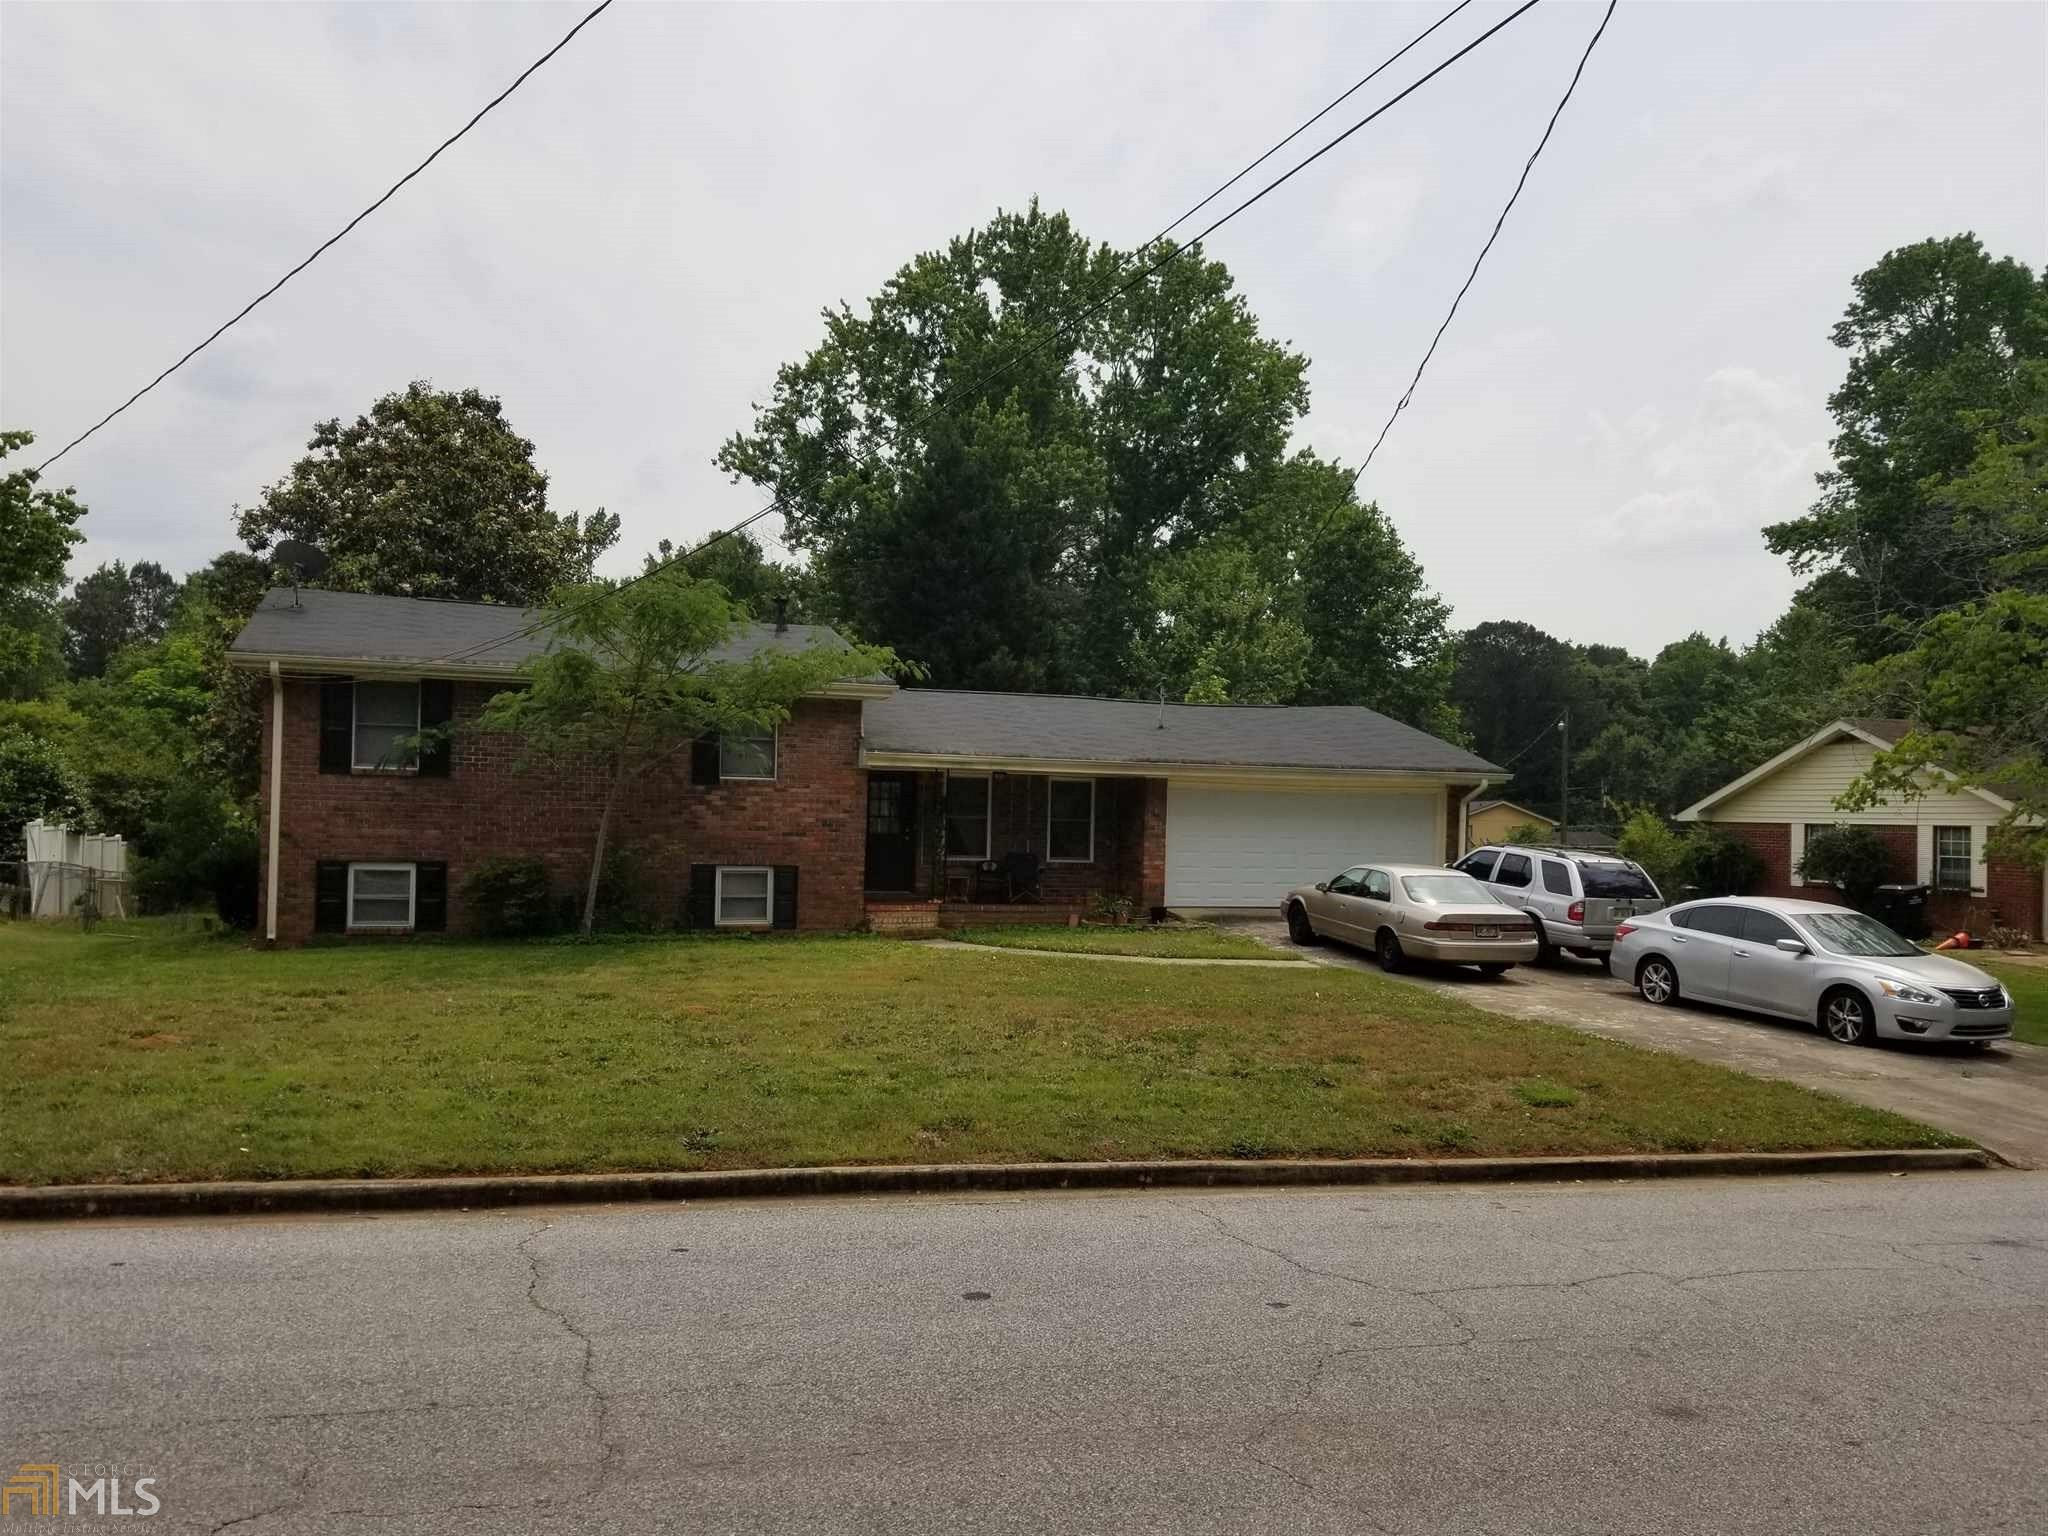 1745 Charles Ave, Jonesboro, GA 30236 (MLS #8341400) :: Bonds Realty Group Keller Williams Realty - Atlanta Partners